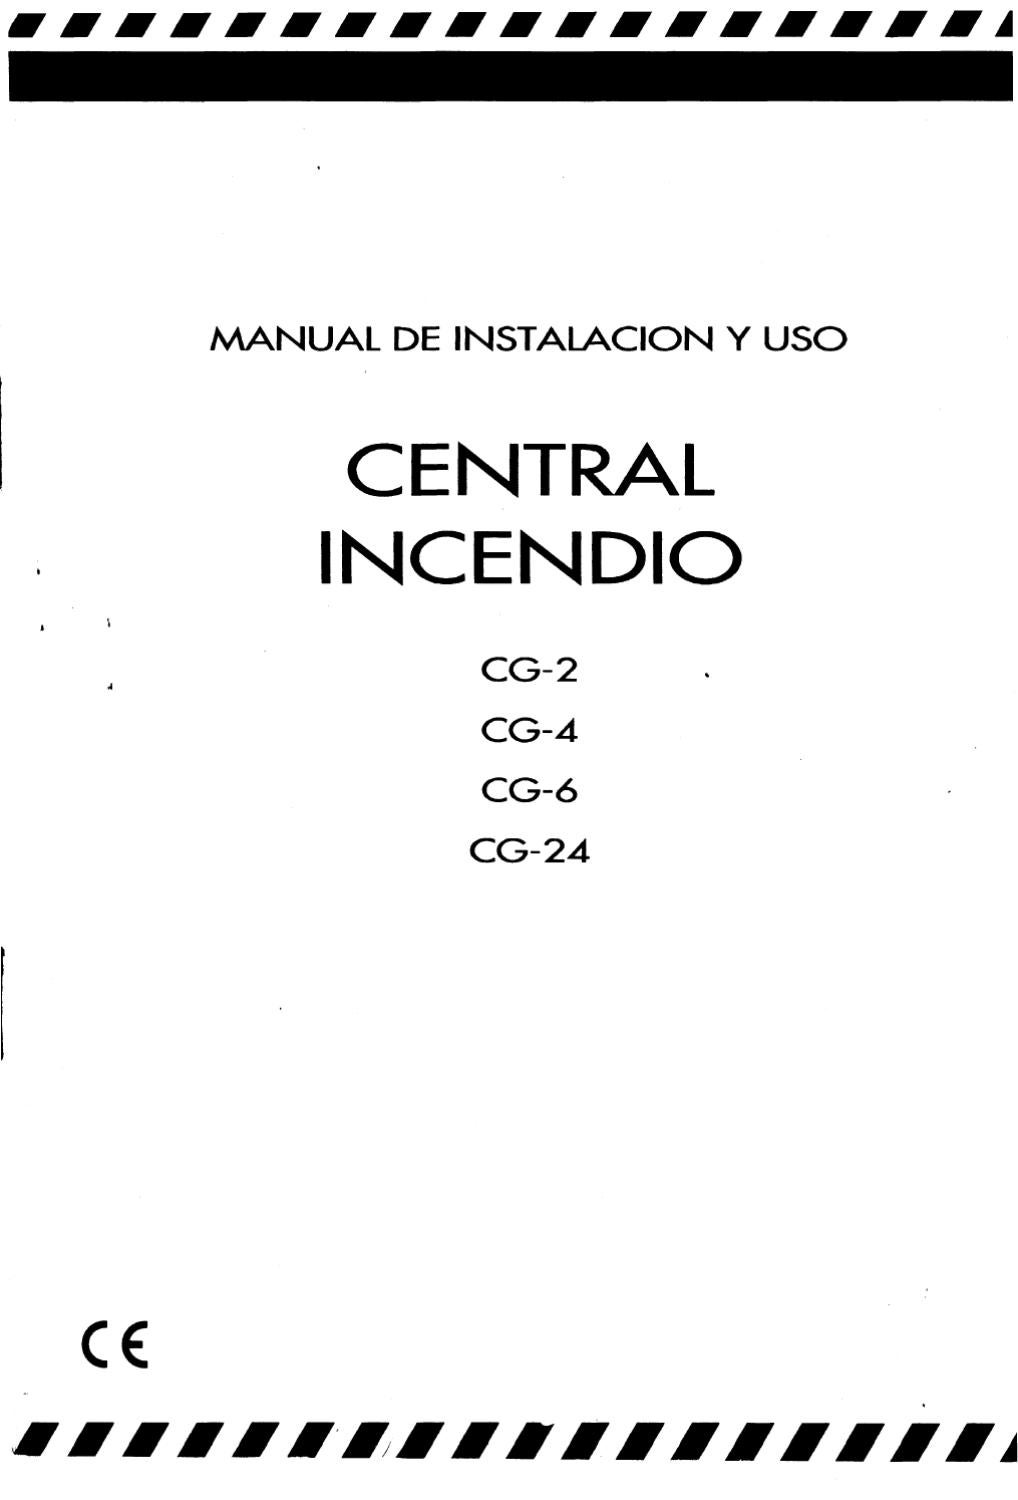 Central Incendio CG-2 a CG-24 Manual de instalacion y uso